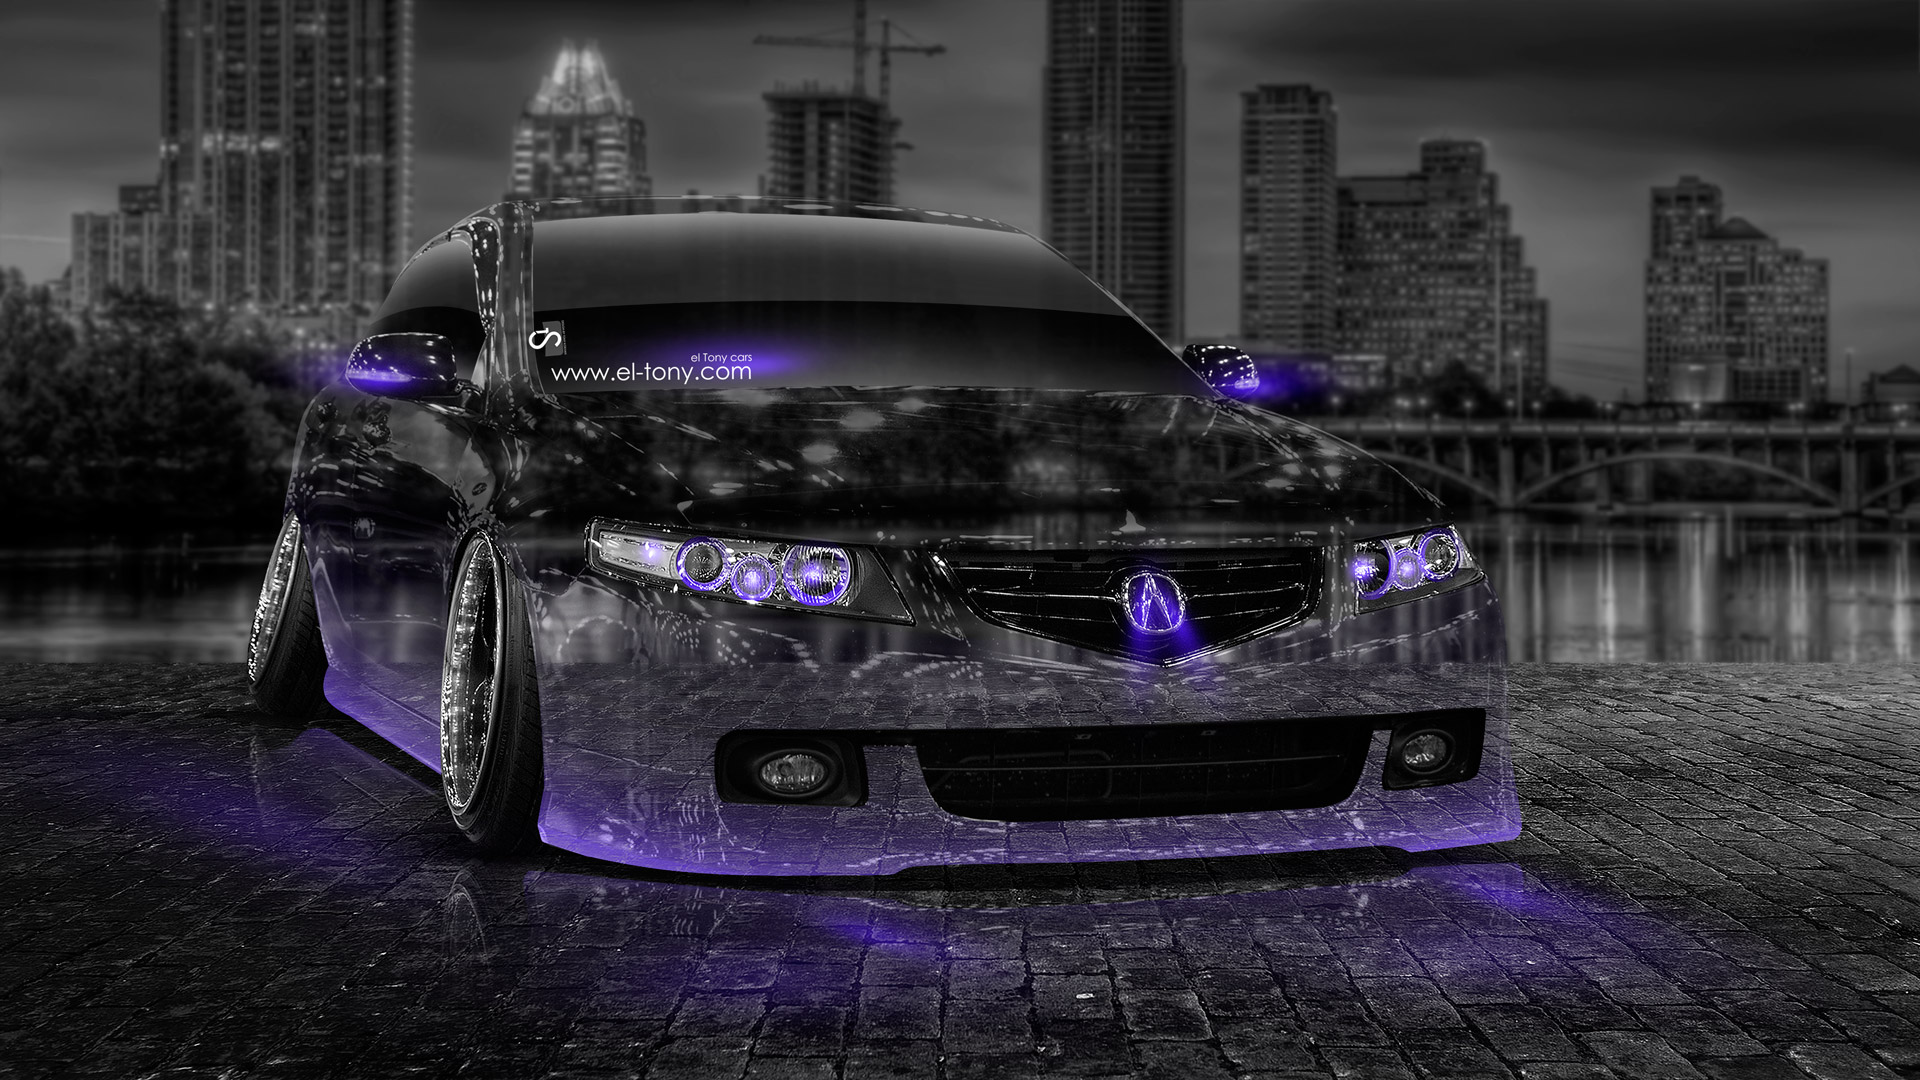 1920x1080 - Acura TSX Wallpapers 31